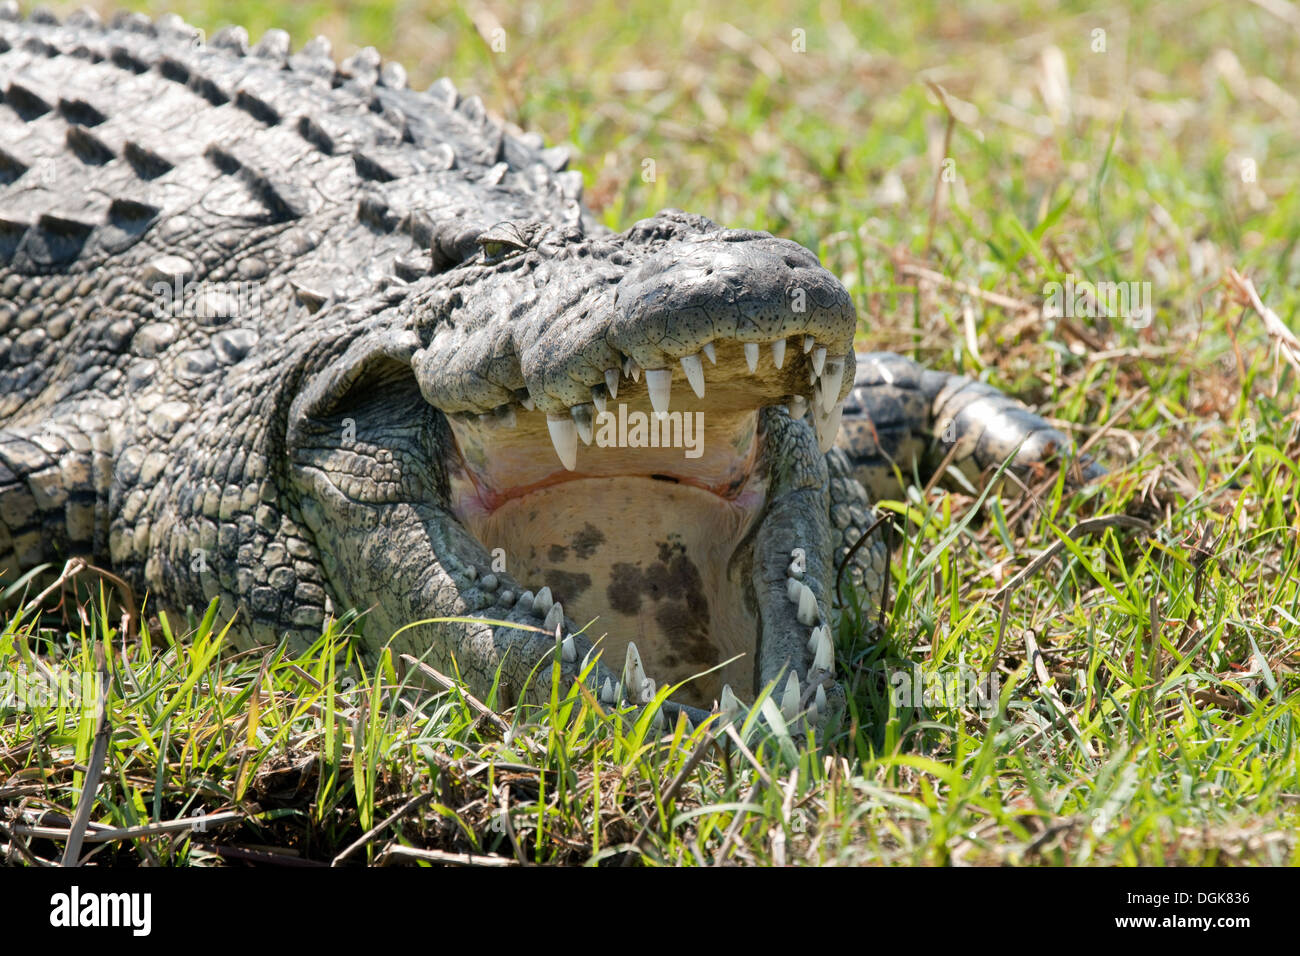 Nile crocodile ( Crocodylus niloticus ) with its mouth open to regulate temperature, Chobe National Park, Botswana Africa - Stock Image